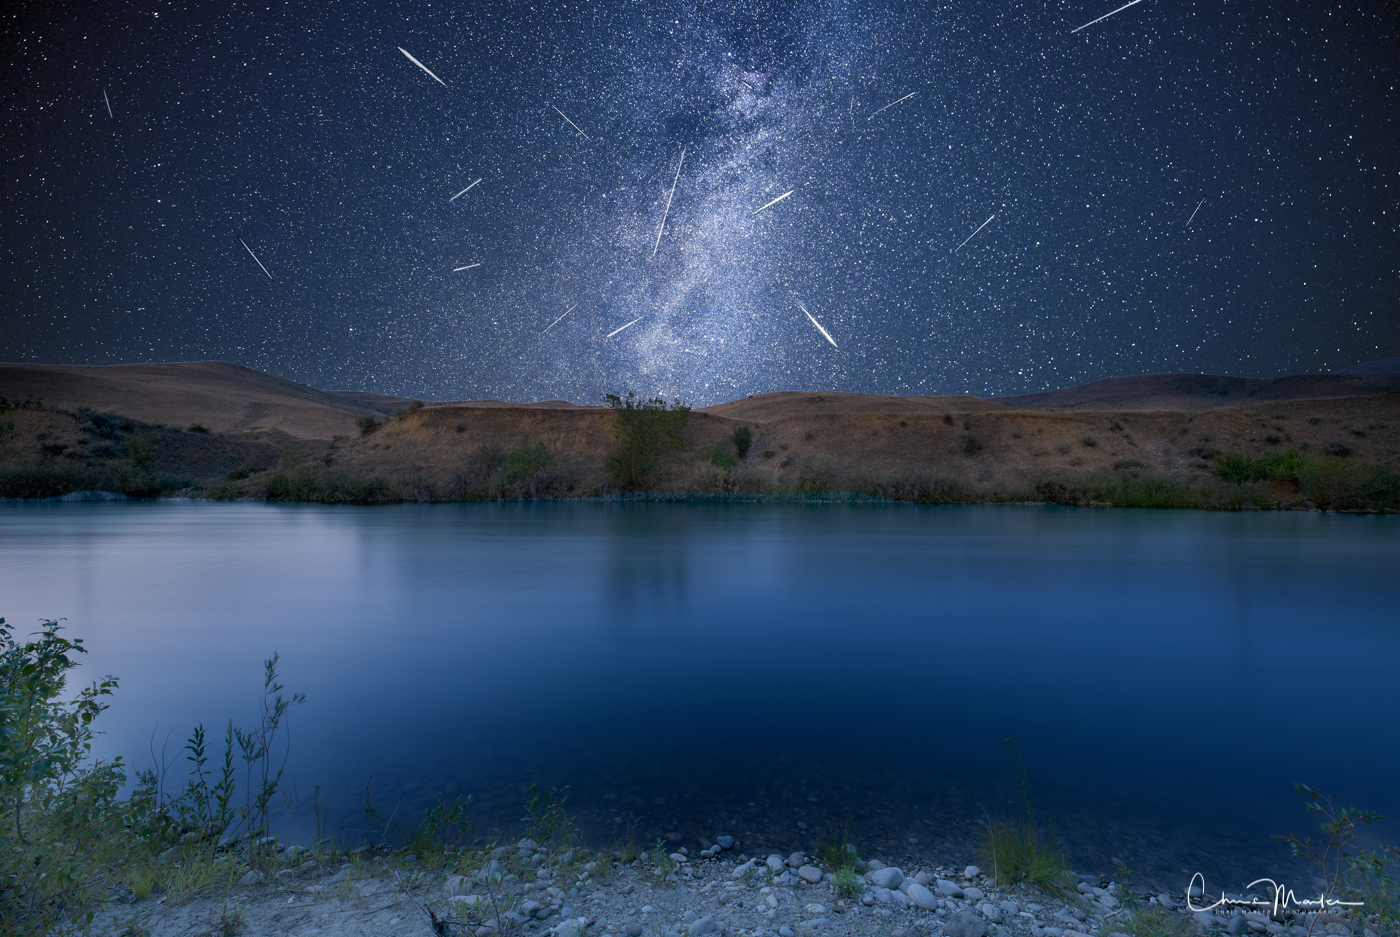 Perseids on the Payette, Perseids, Meteor Shower, Payette River, Milky Way